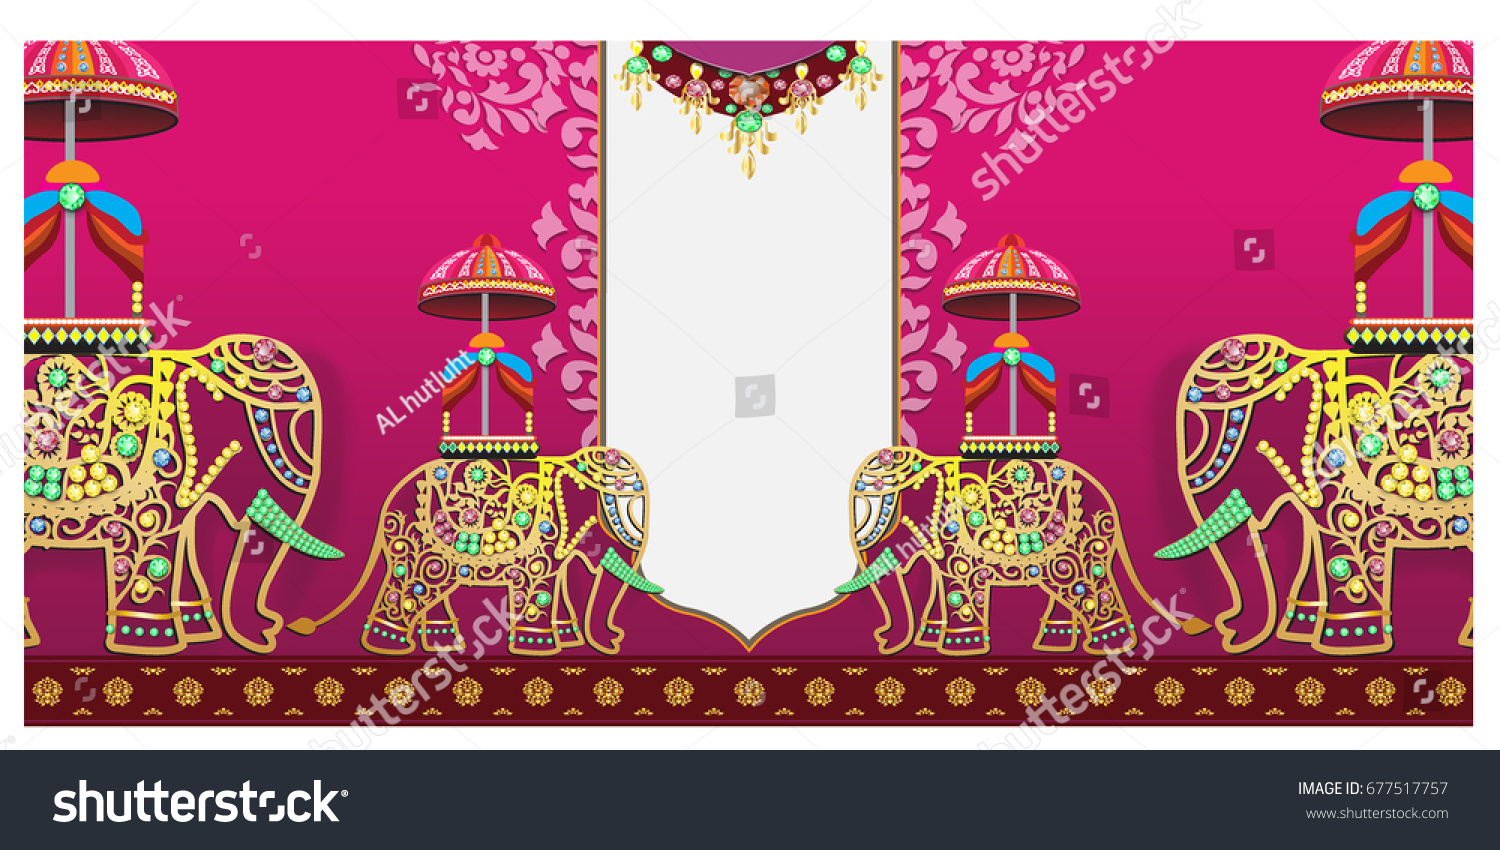 Hindu Wedding Knot Tied Man Woman Stock Vector 677517757 ...